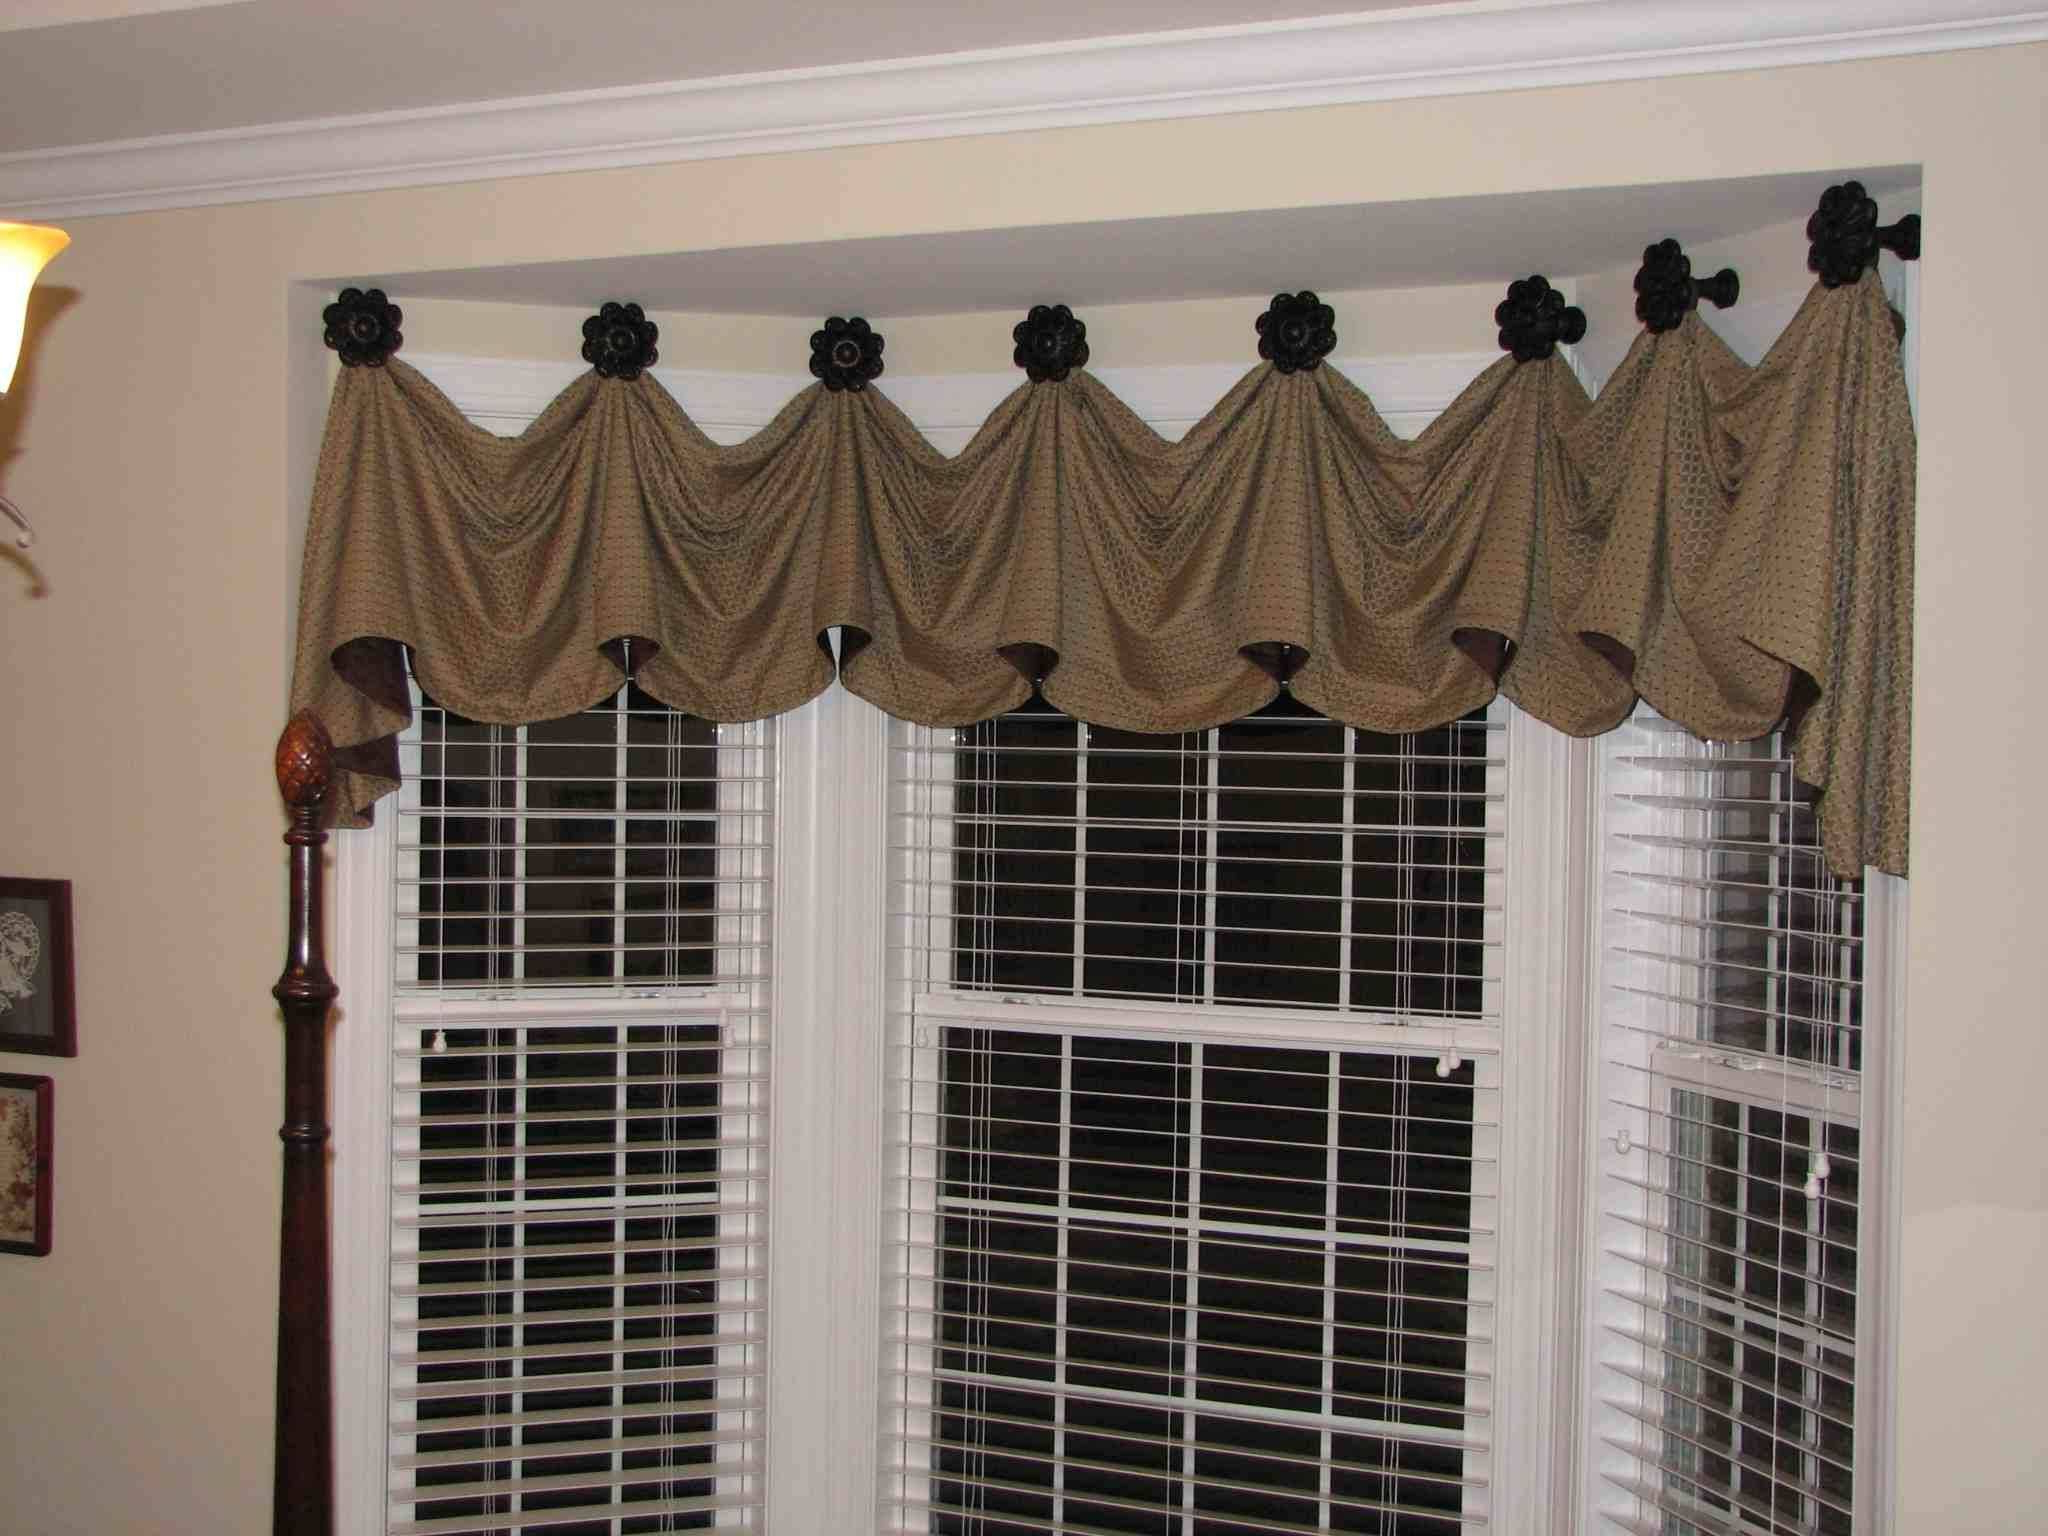 White Knit Lace Bird Motif Window Curtain Tiers Pertaining To Most Recent Fascinating Window Valance White Knit Lace Bird Motif (View 8 of 20)